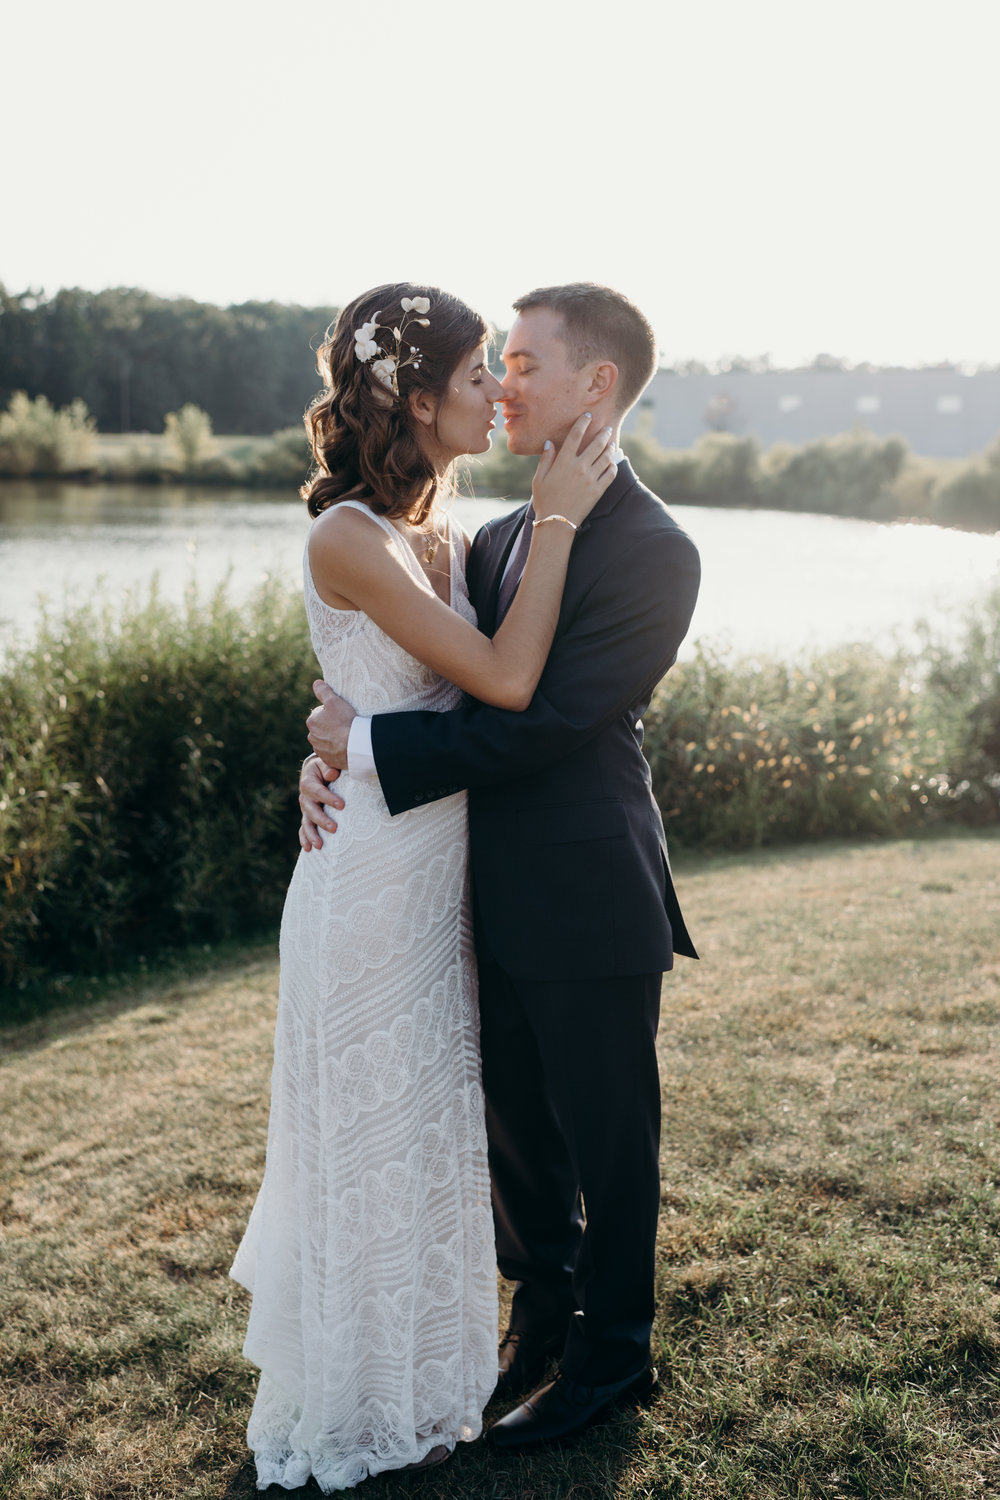 Bride and groom lean in to kiss each other outside by a pond.